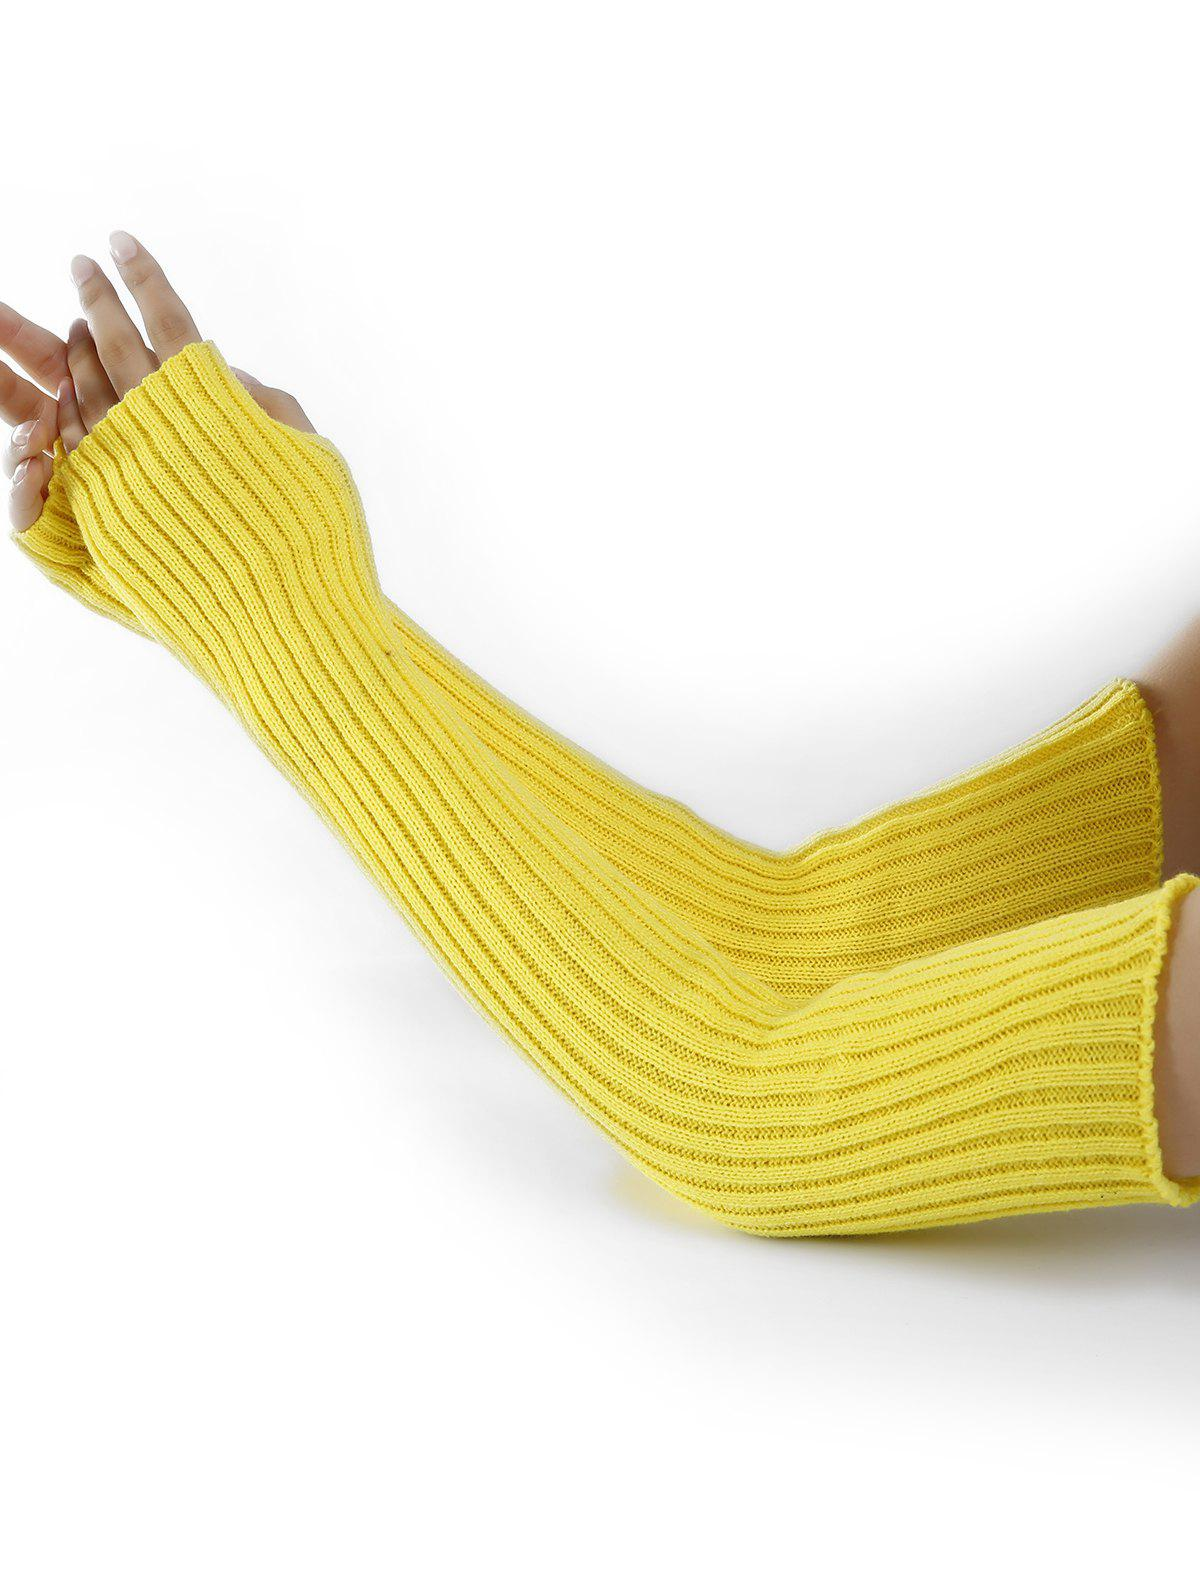 Soft Vertical Striped Pattern Crochet Knitted Arm Warmers - FLUORESCENT YELLOW